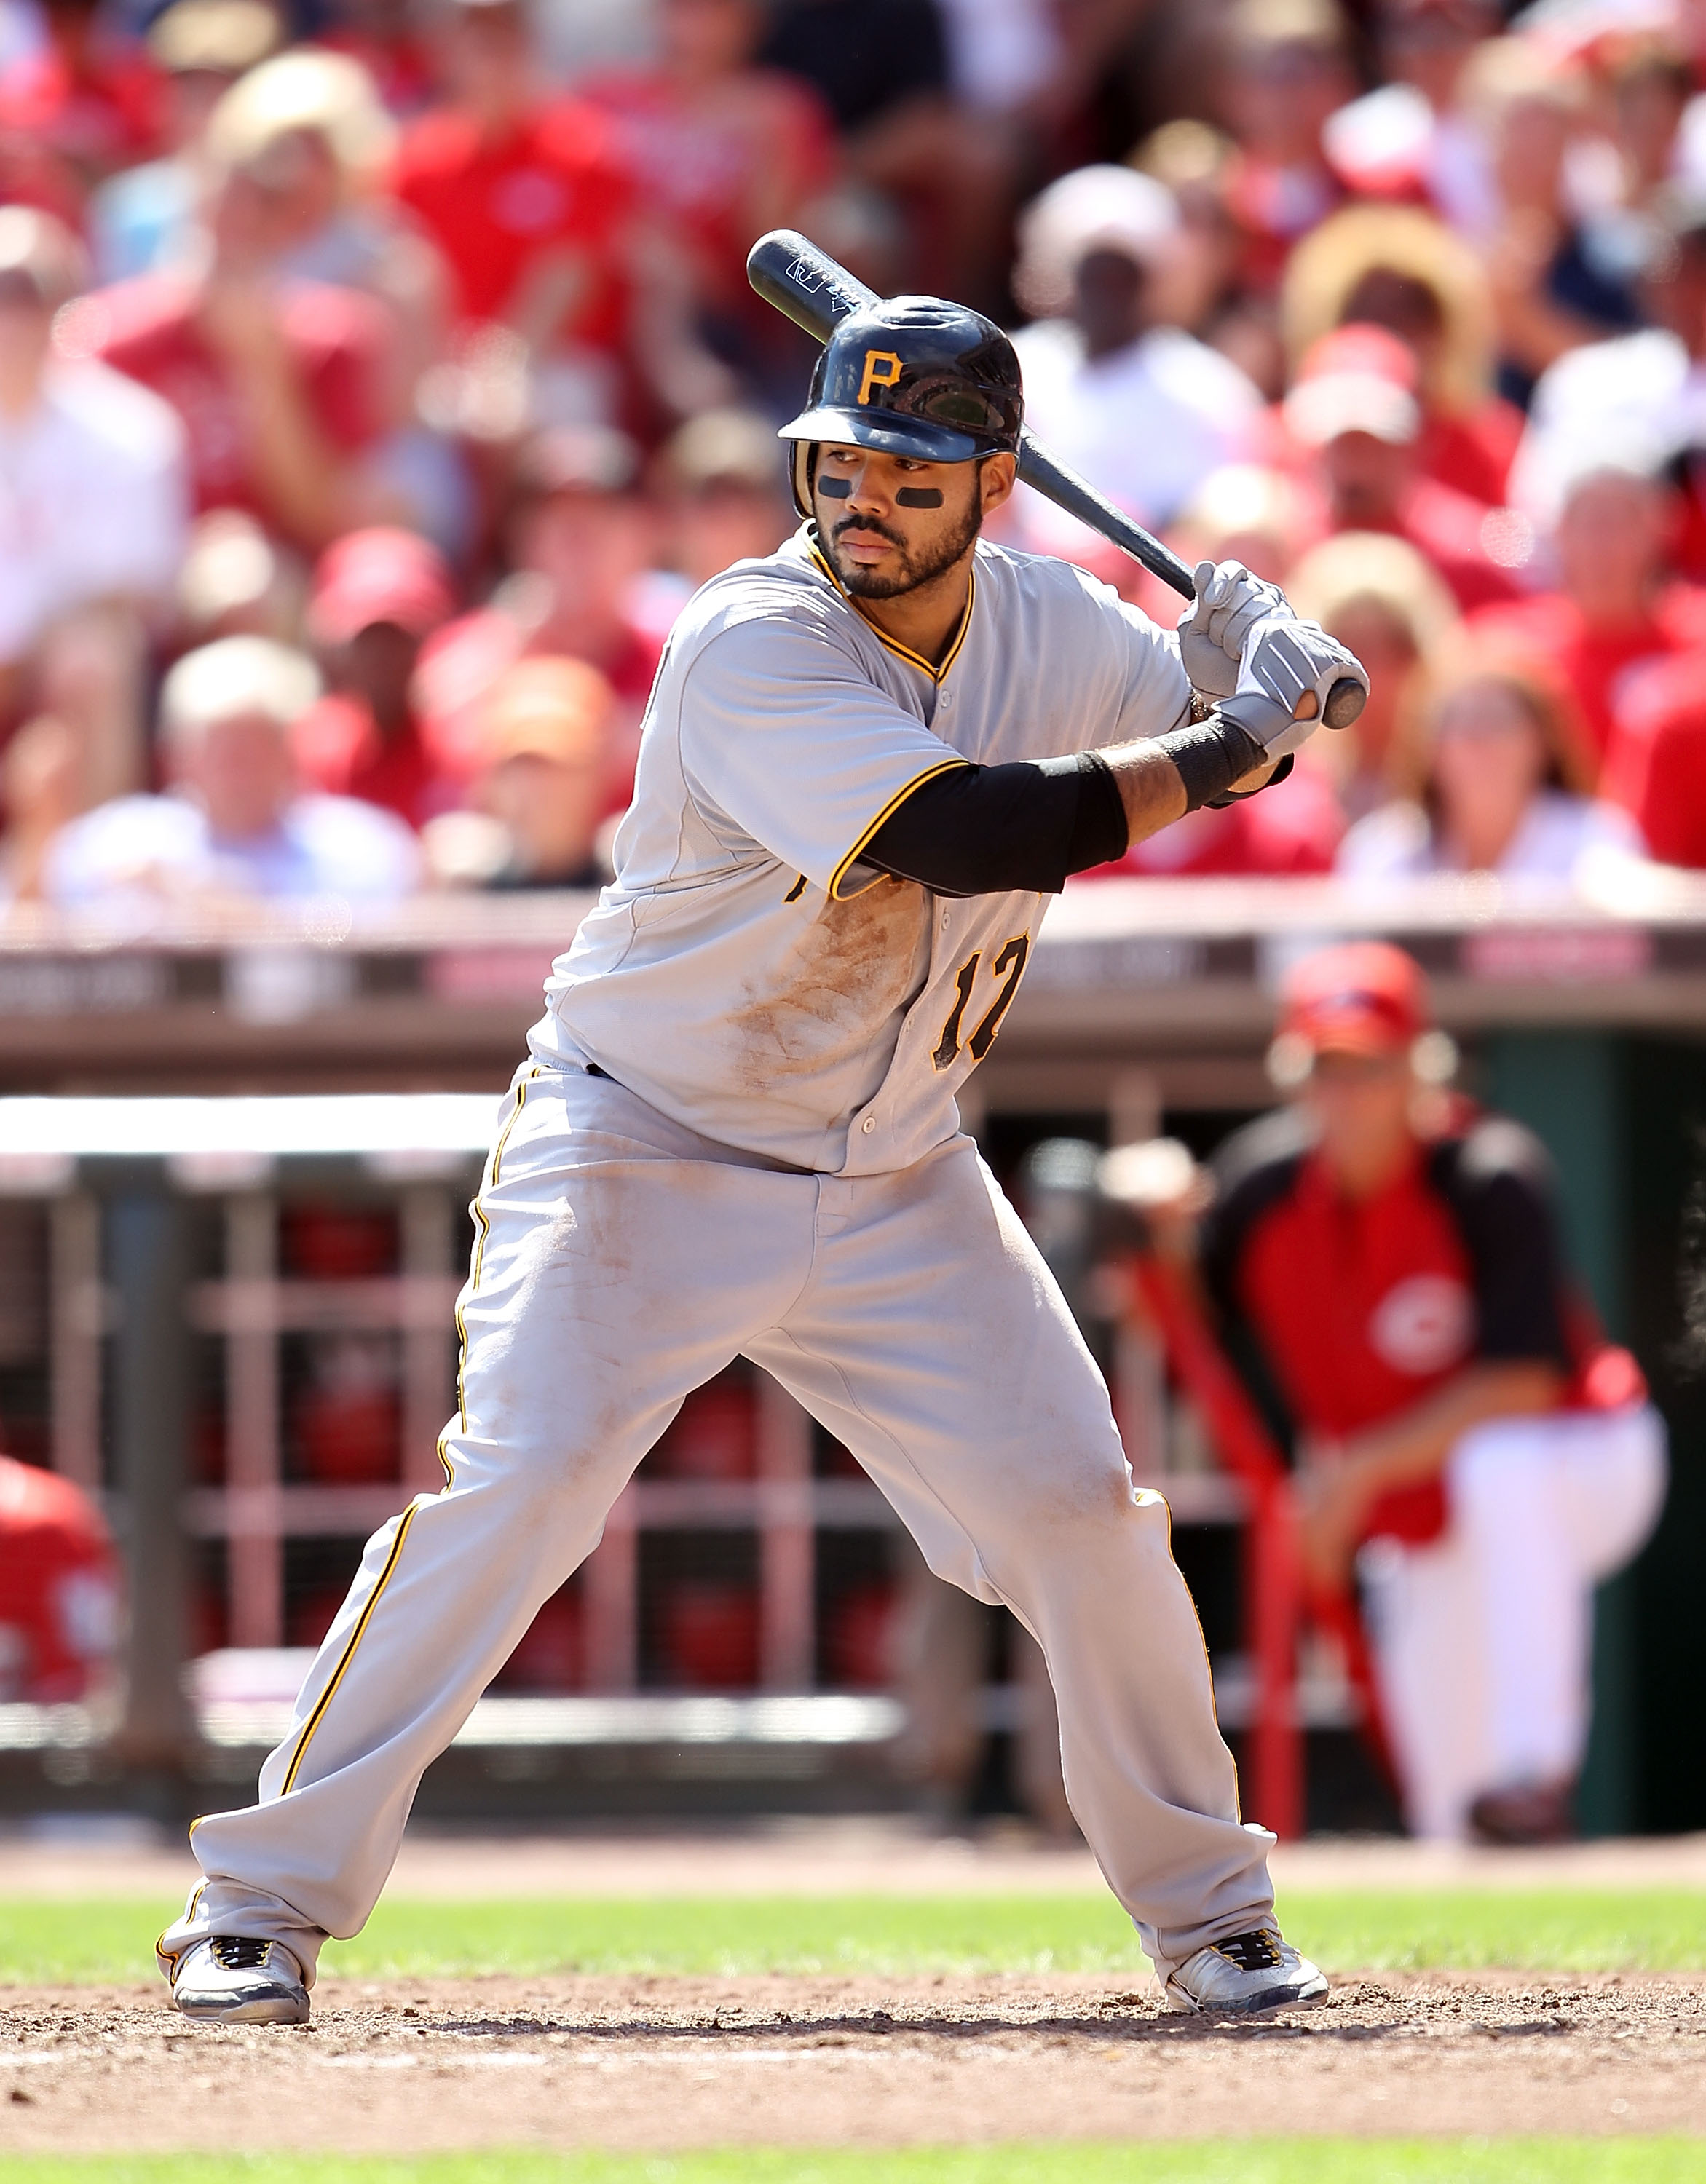 Alvarez is no whiz with the leather, but it hardly matters: the Pirates are non-factors.